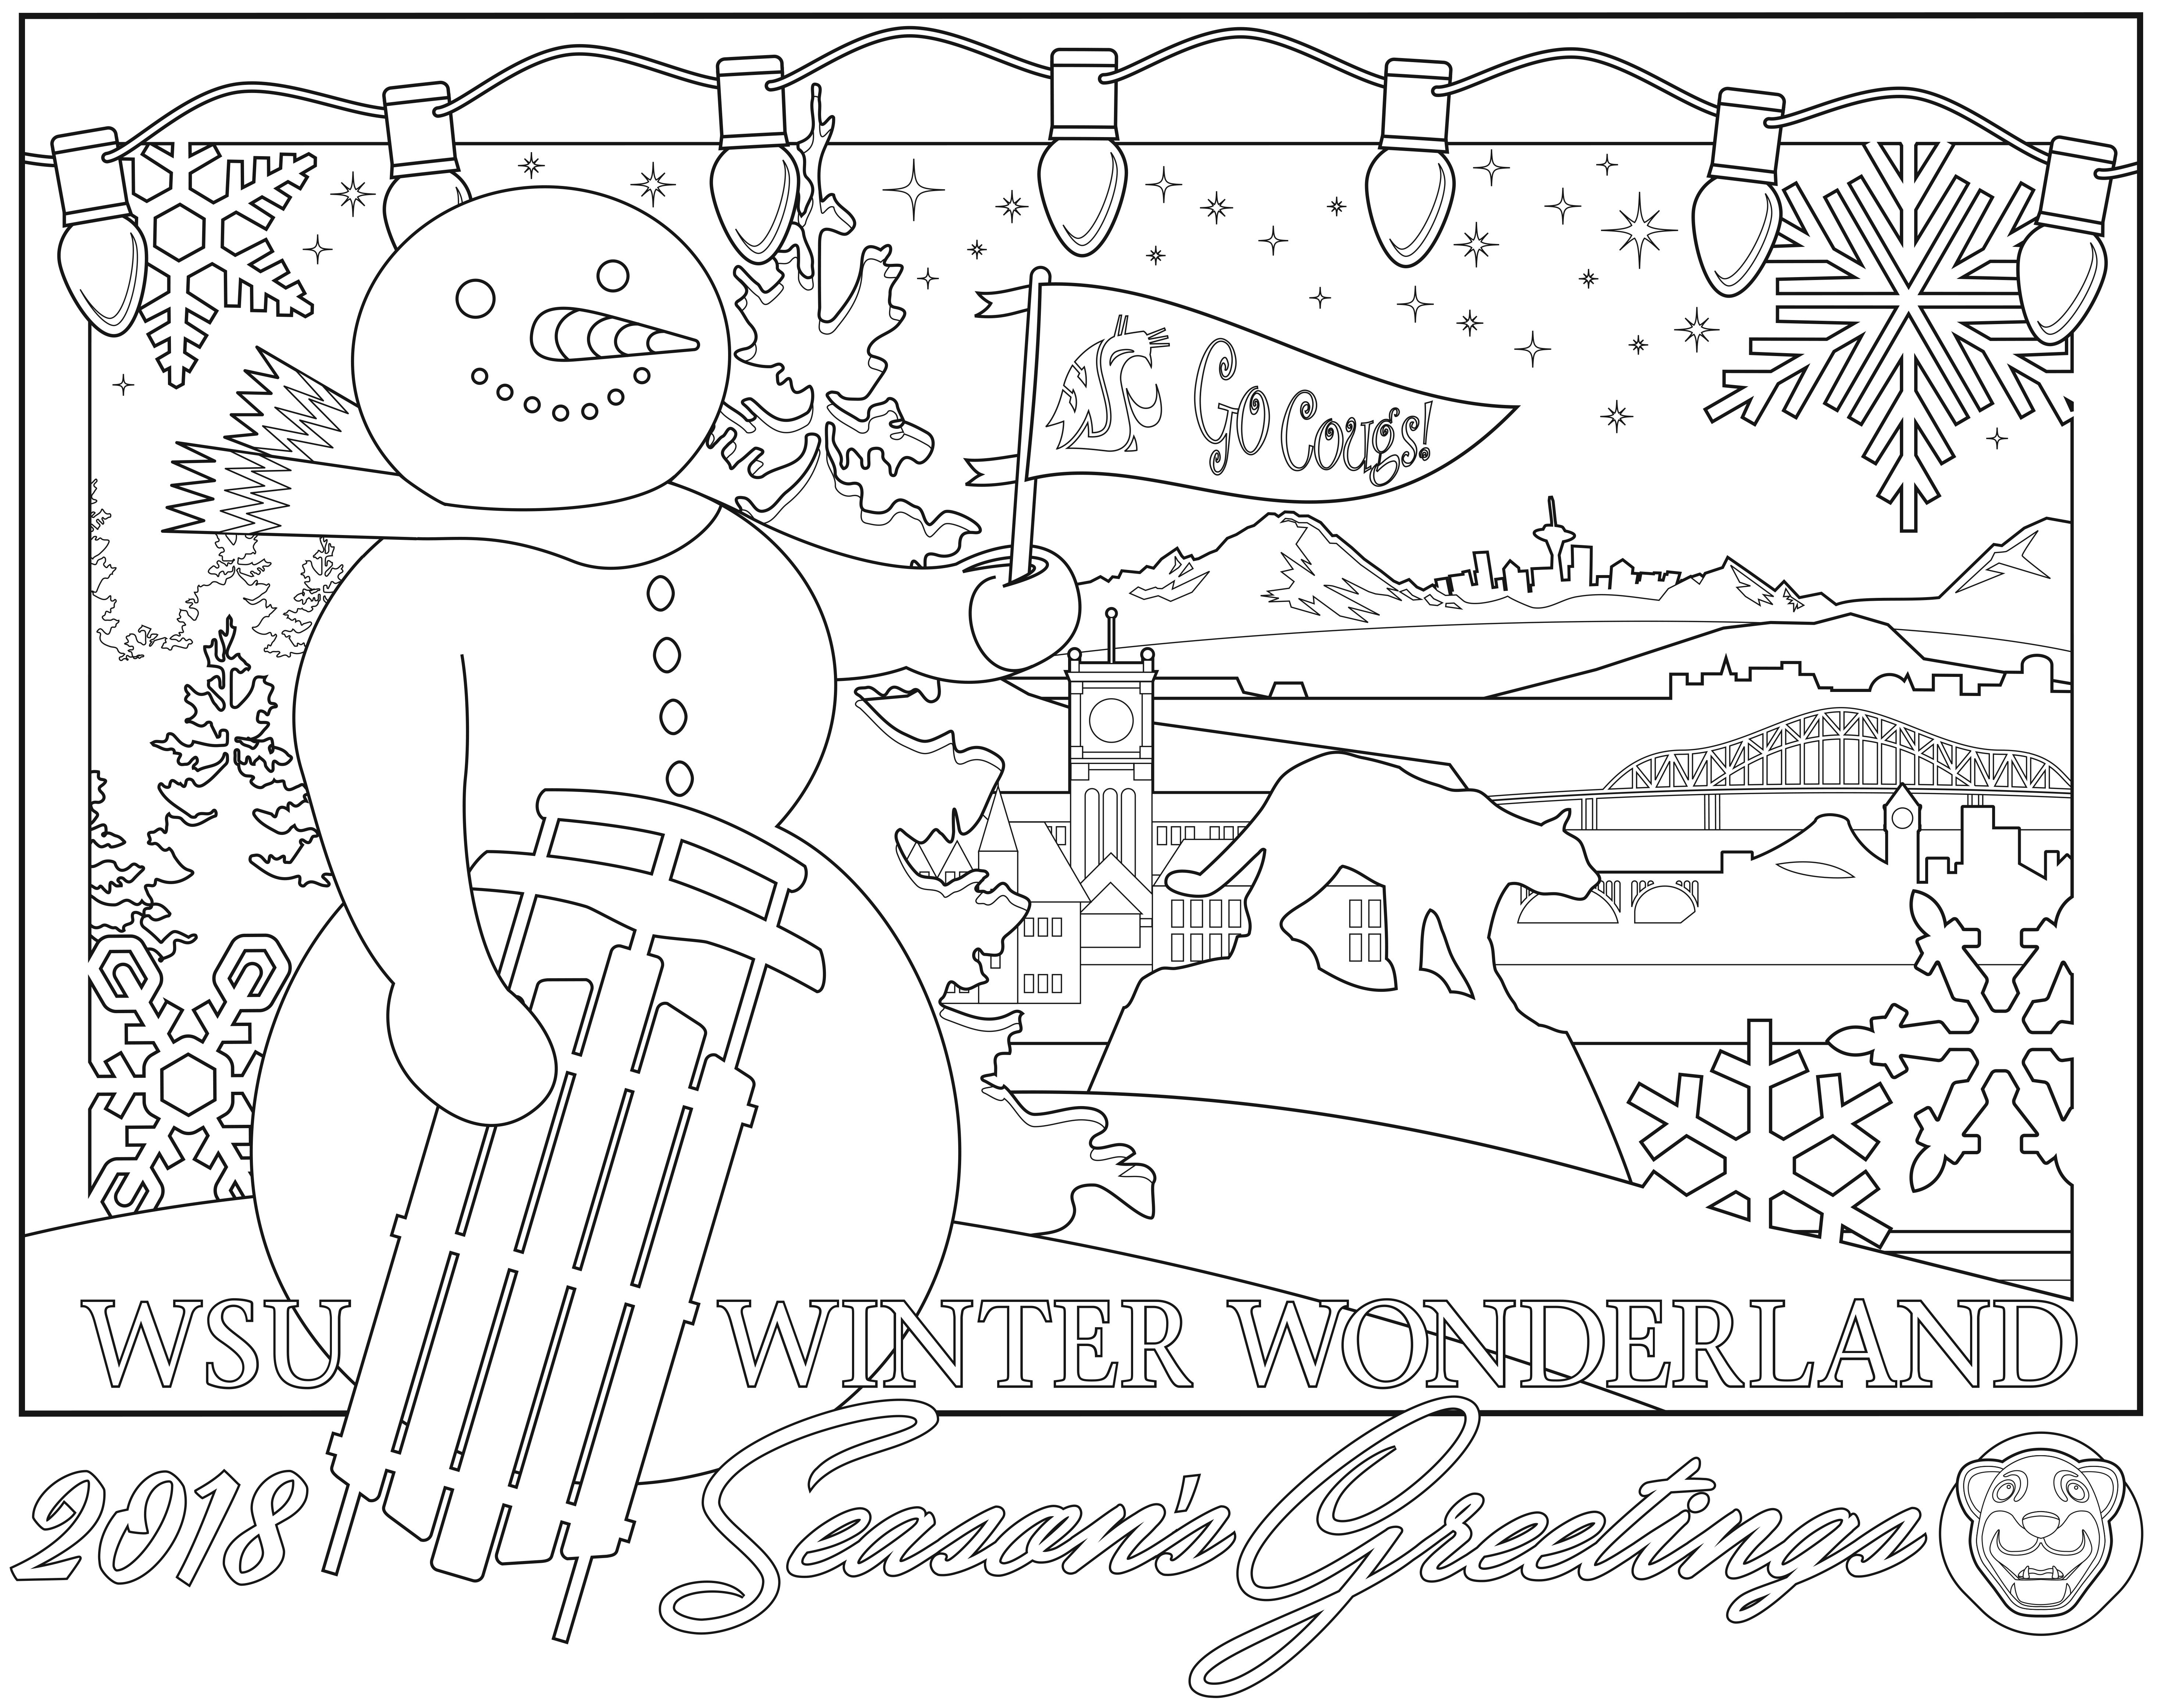 Holiday Coloring Contest Artwork